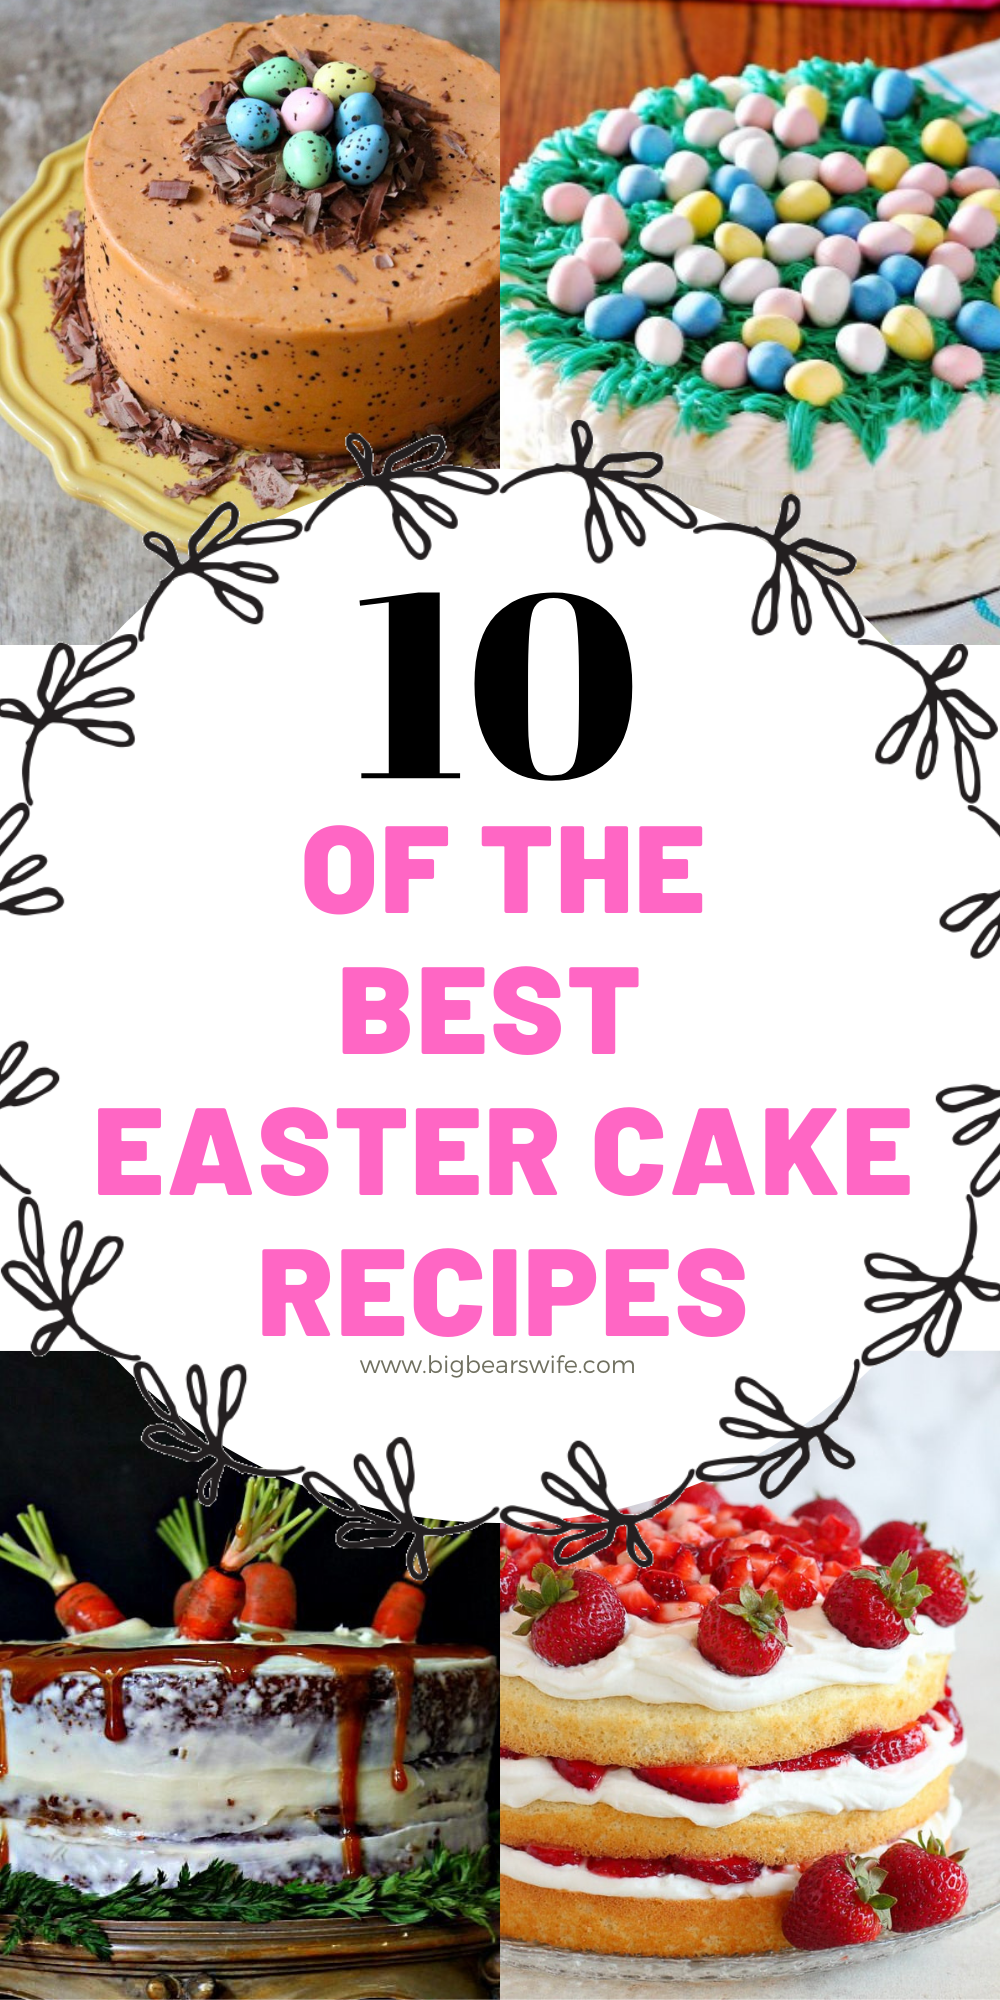 What's more fabulous than showing up to Easter lunch or Easter dinner with a beautiful Easter cake!?! If you're looking for the perfect Easter cake to make for Easter this year, this is where you need to be. I've found 10 of the BEST Easter Cake Recipes for you to pick from for this years sweet celebration. via @bigbearswife